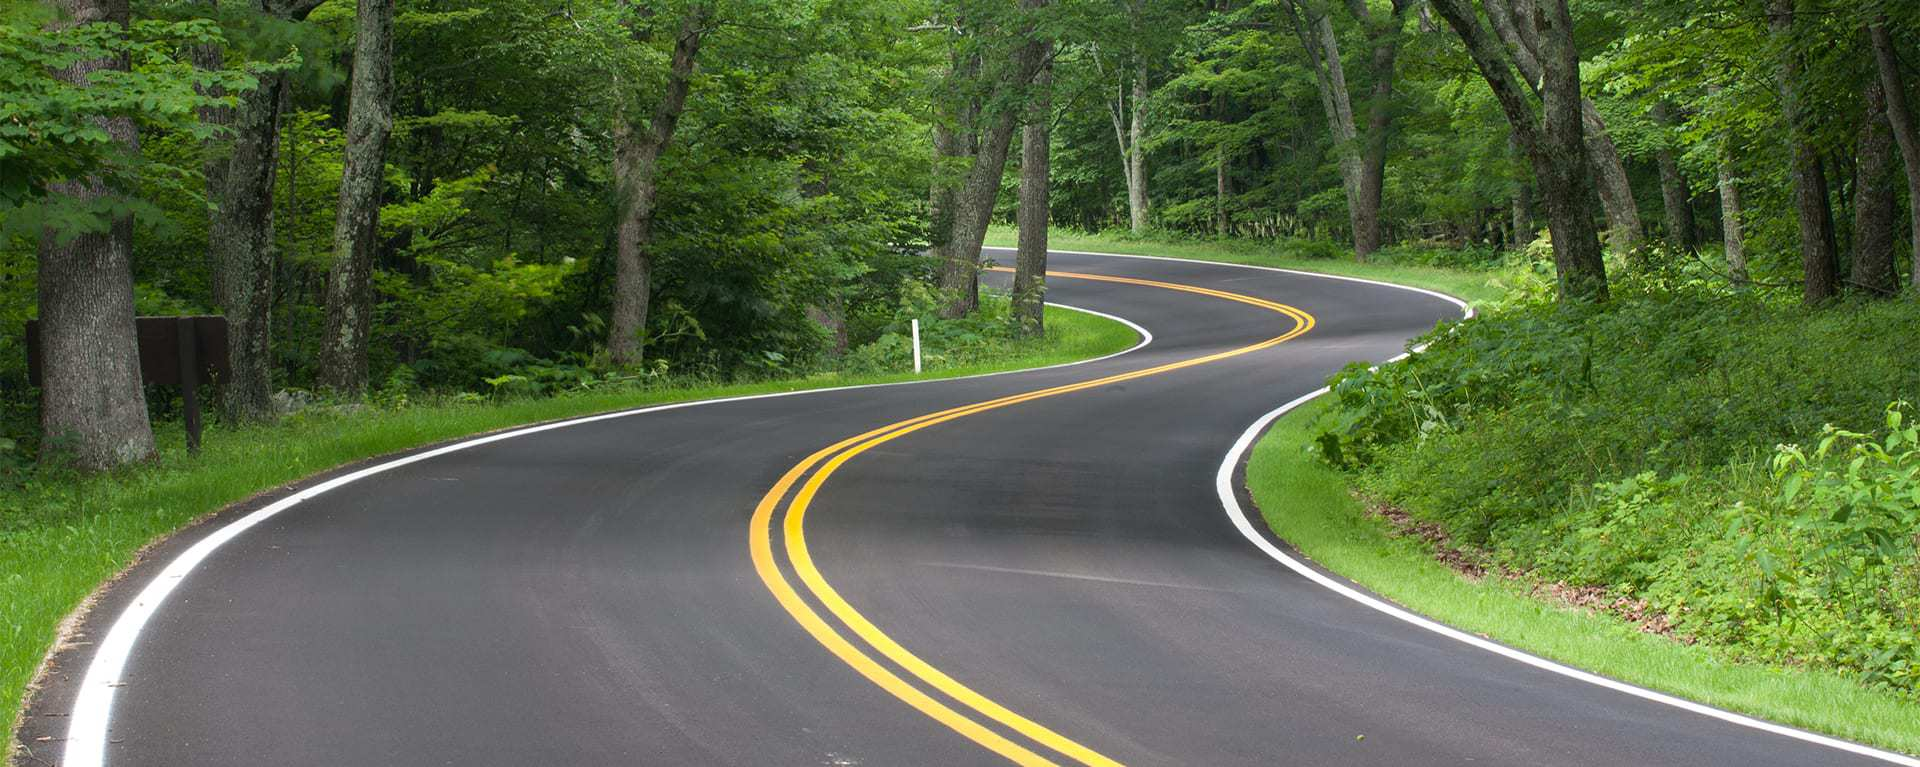 Image of a winding road, depicting the technology paths Swartz Consulting can help you navigate